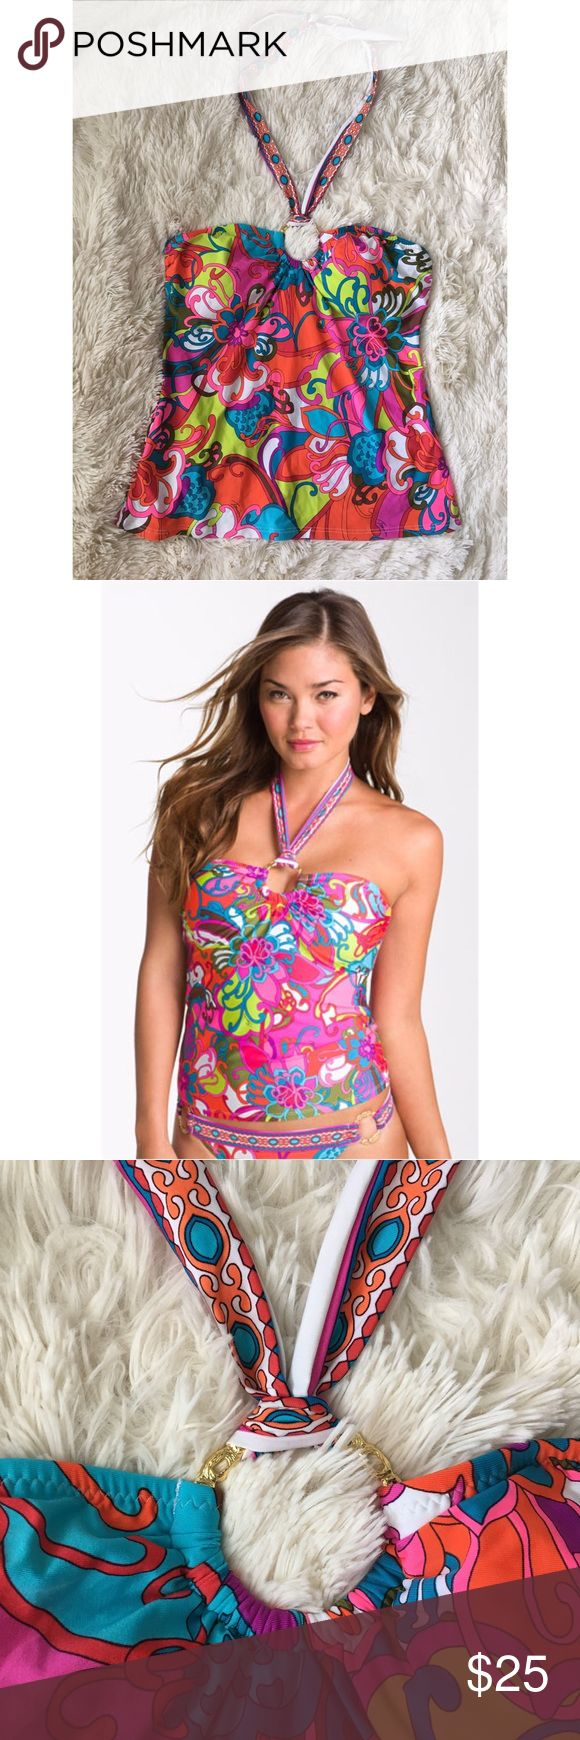 """Trina Turk Fiji floral tanking top Tropical flowers splash riotous color over a bandeau top suspended from soft halter ties by a golden ring. A shelf-bra with lightly padded cups offers comfortable shaping.  * Ties behind neck.  * Removable padding.  * Approx. length from top center front: 14"""".  * Nylon/spandex; hand wash.  * By Trina Turk   Size 4. Trina Turk Swim"""